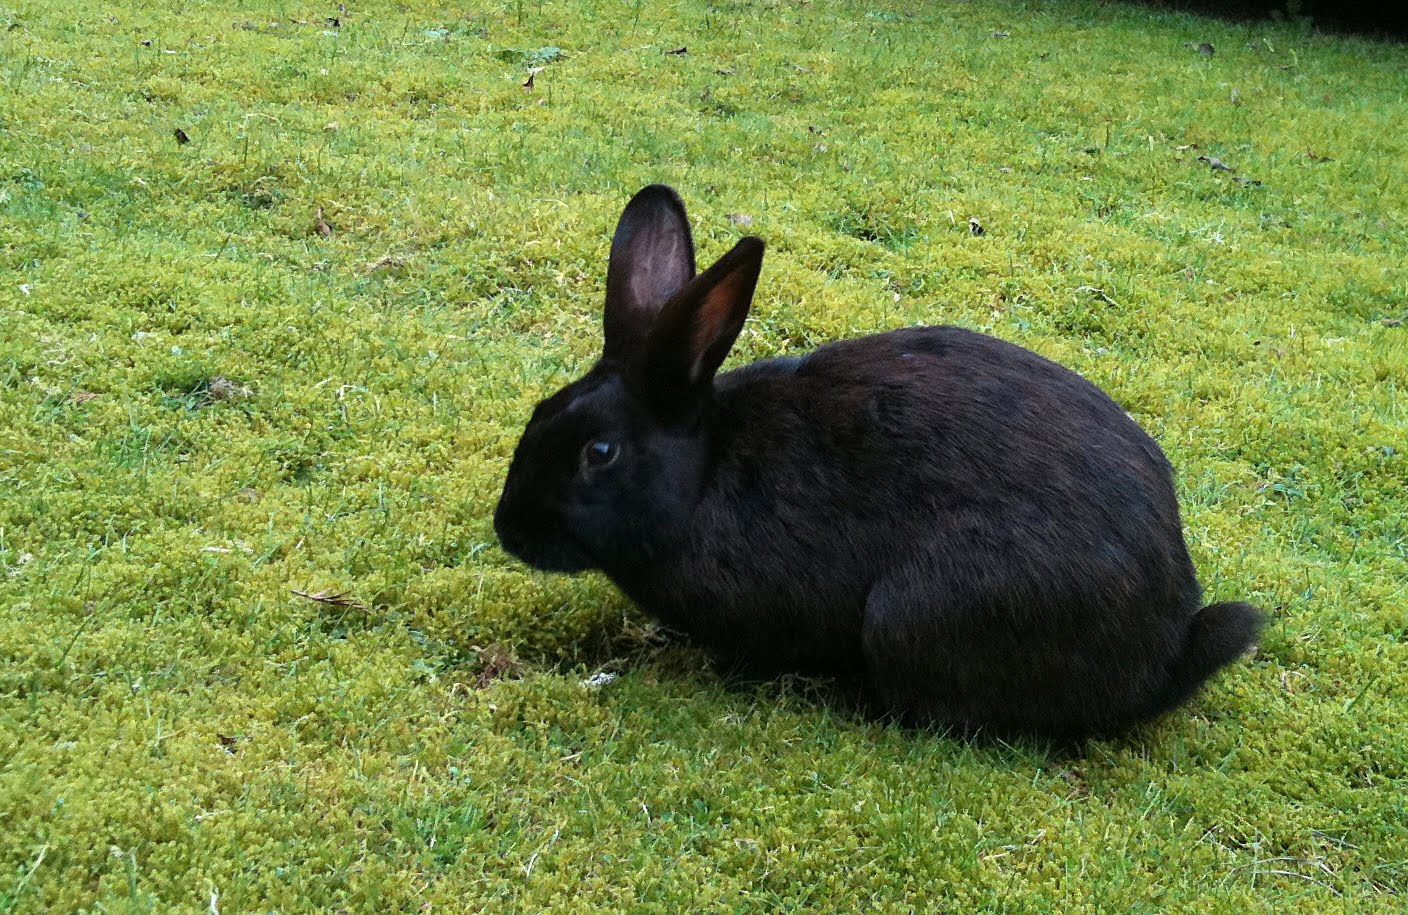 Penny's Hot Birding and Life!: Black Rabbit at work!